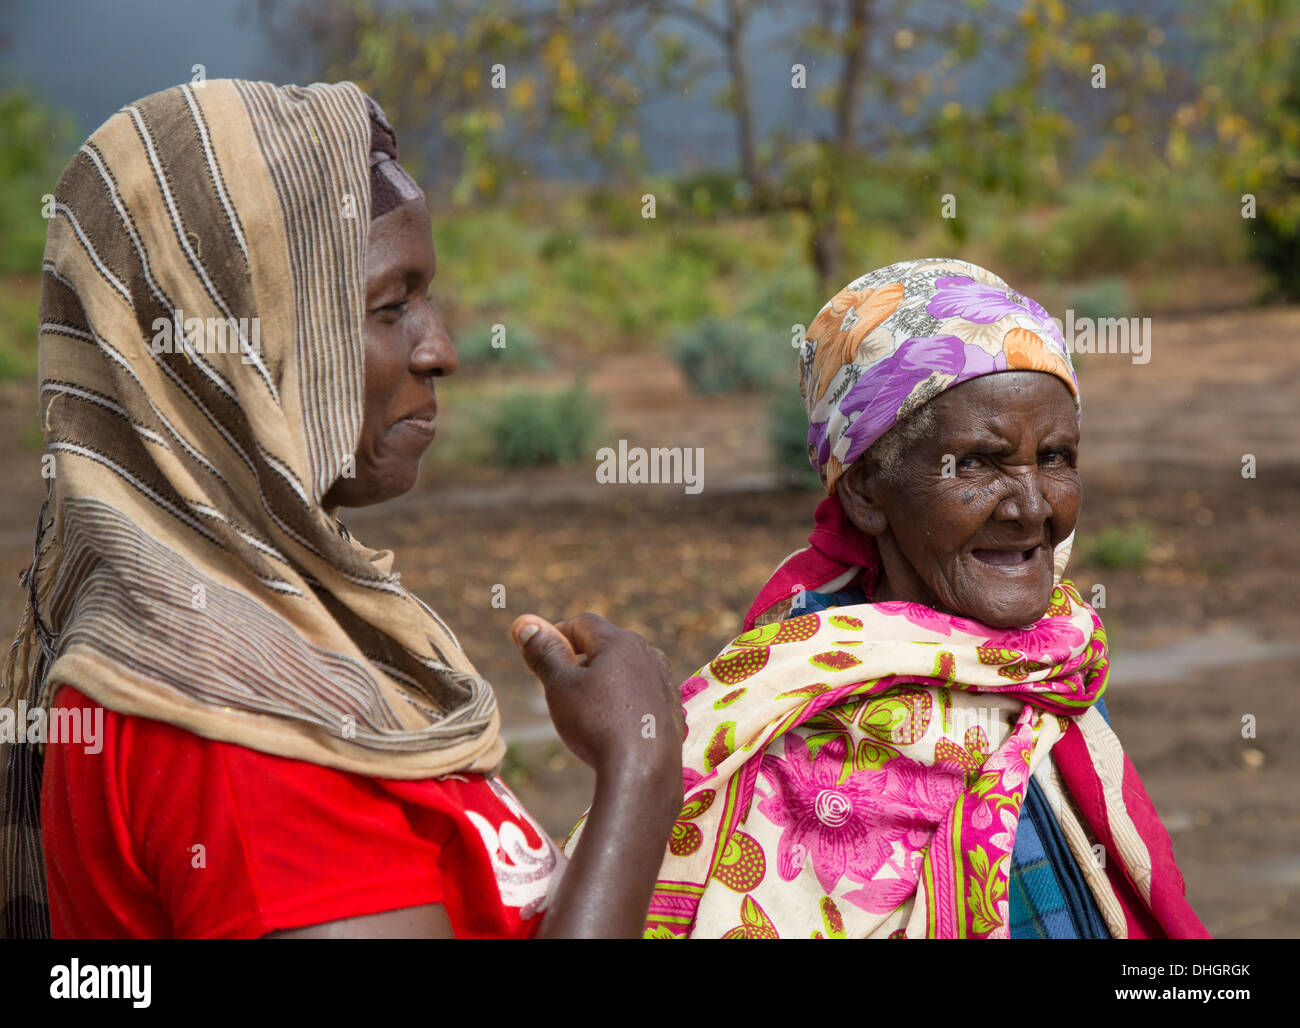 Two colourfully dressed women in a village in the Sagalla region of Southern Kenya Stock Photo